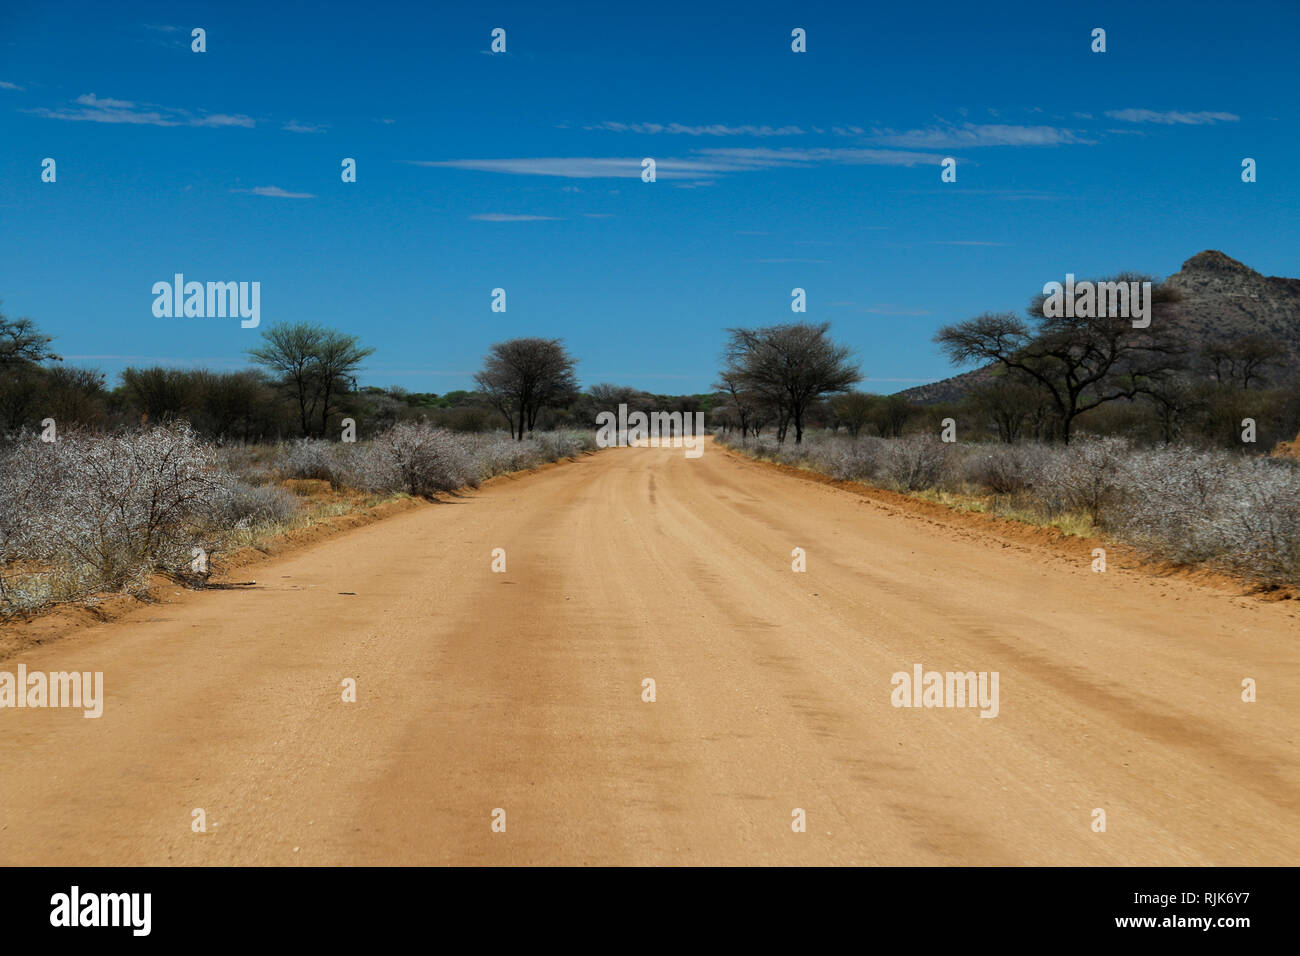 Highway in Namibia Stock Photo